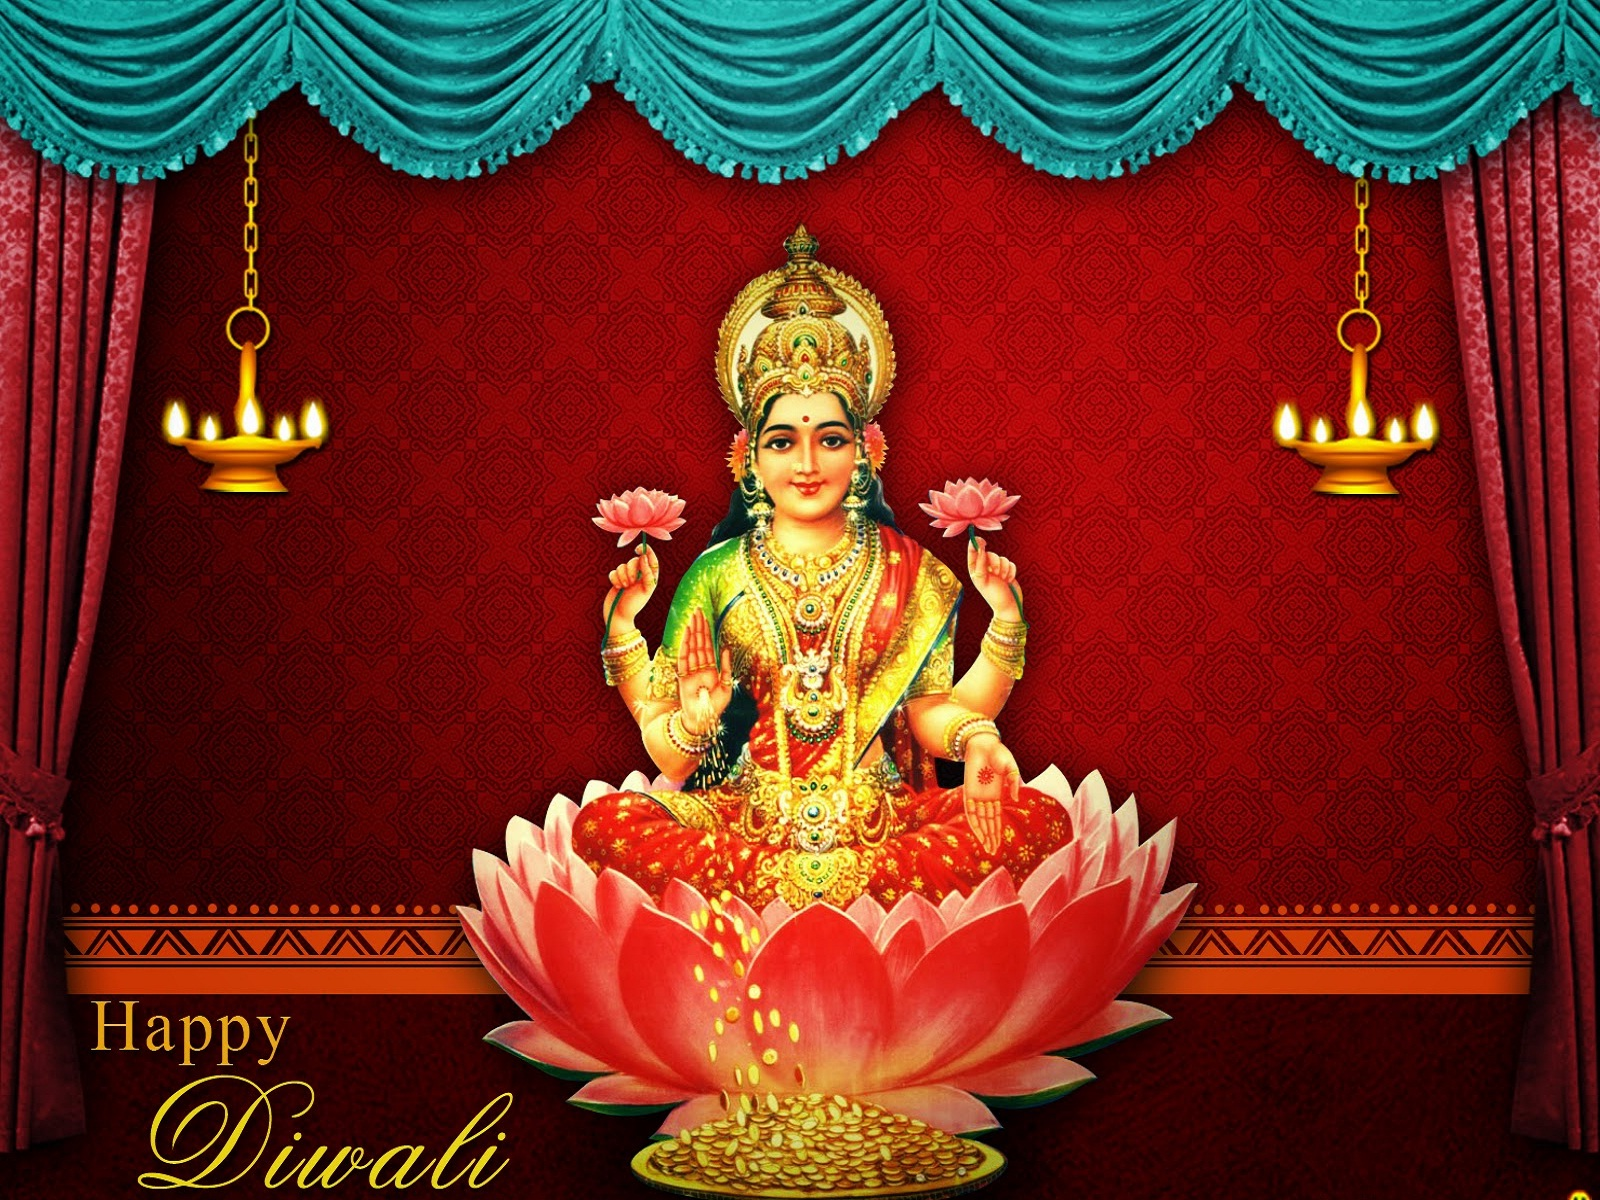 Download Free HD Wallpapers of maa laxmi Devi